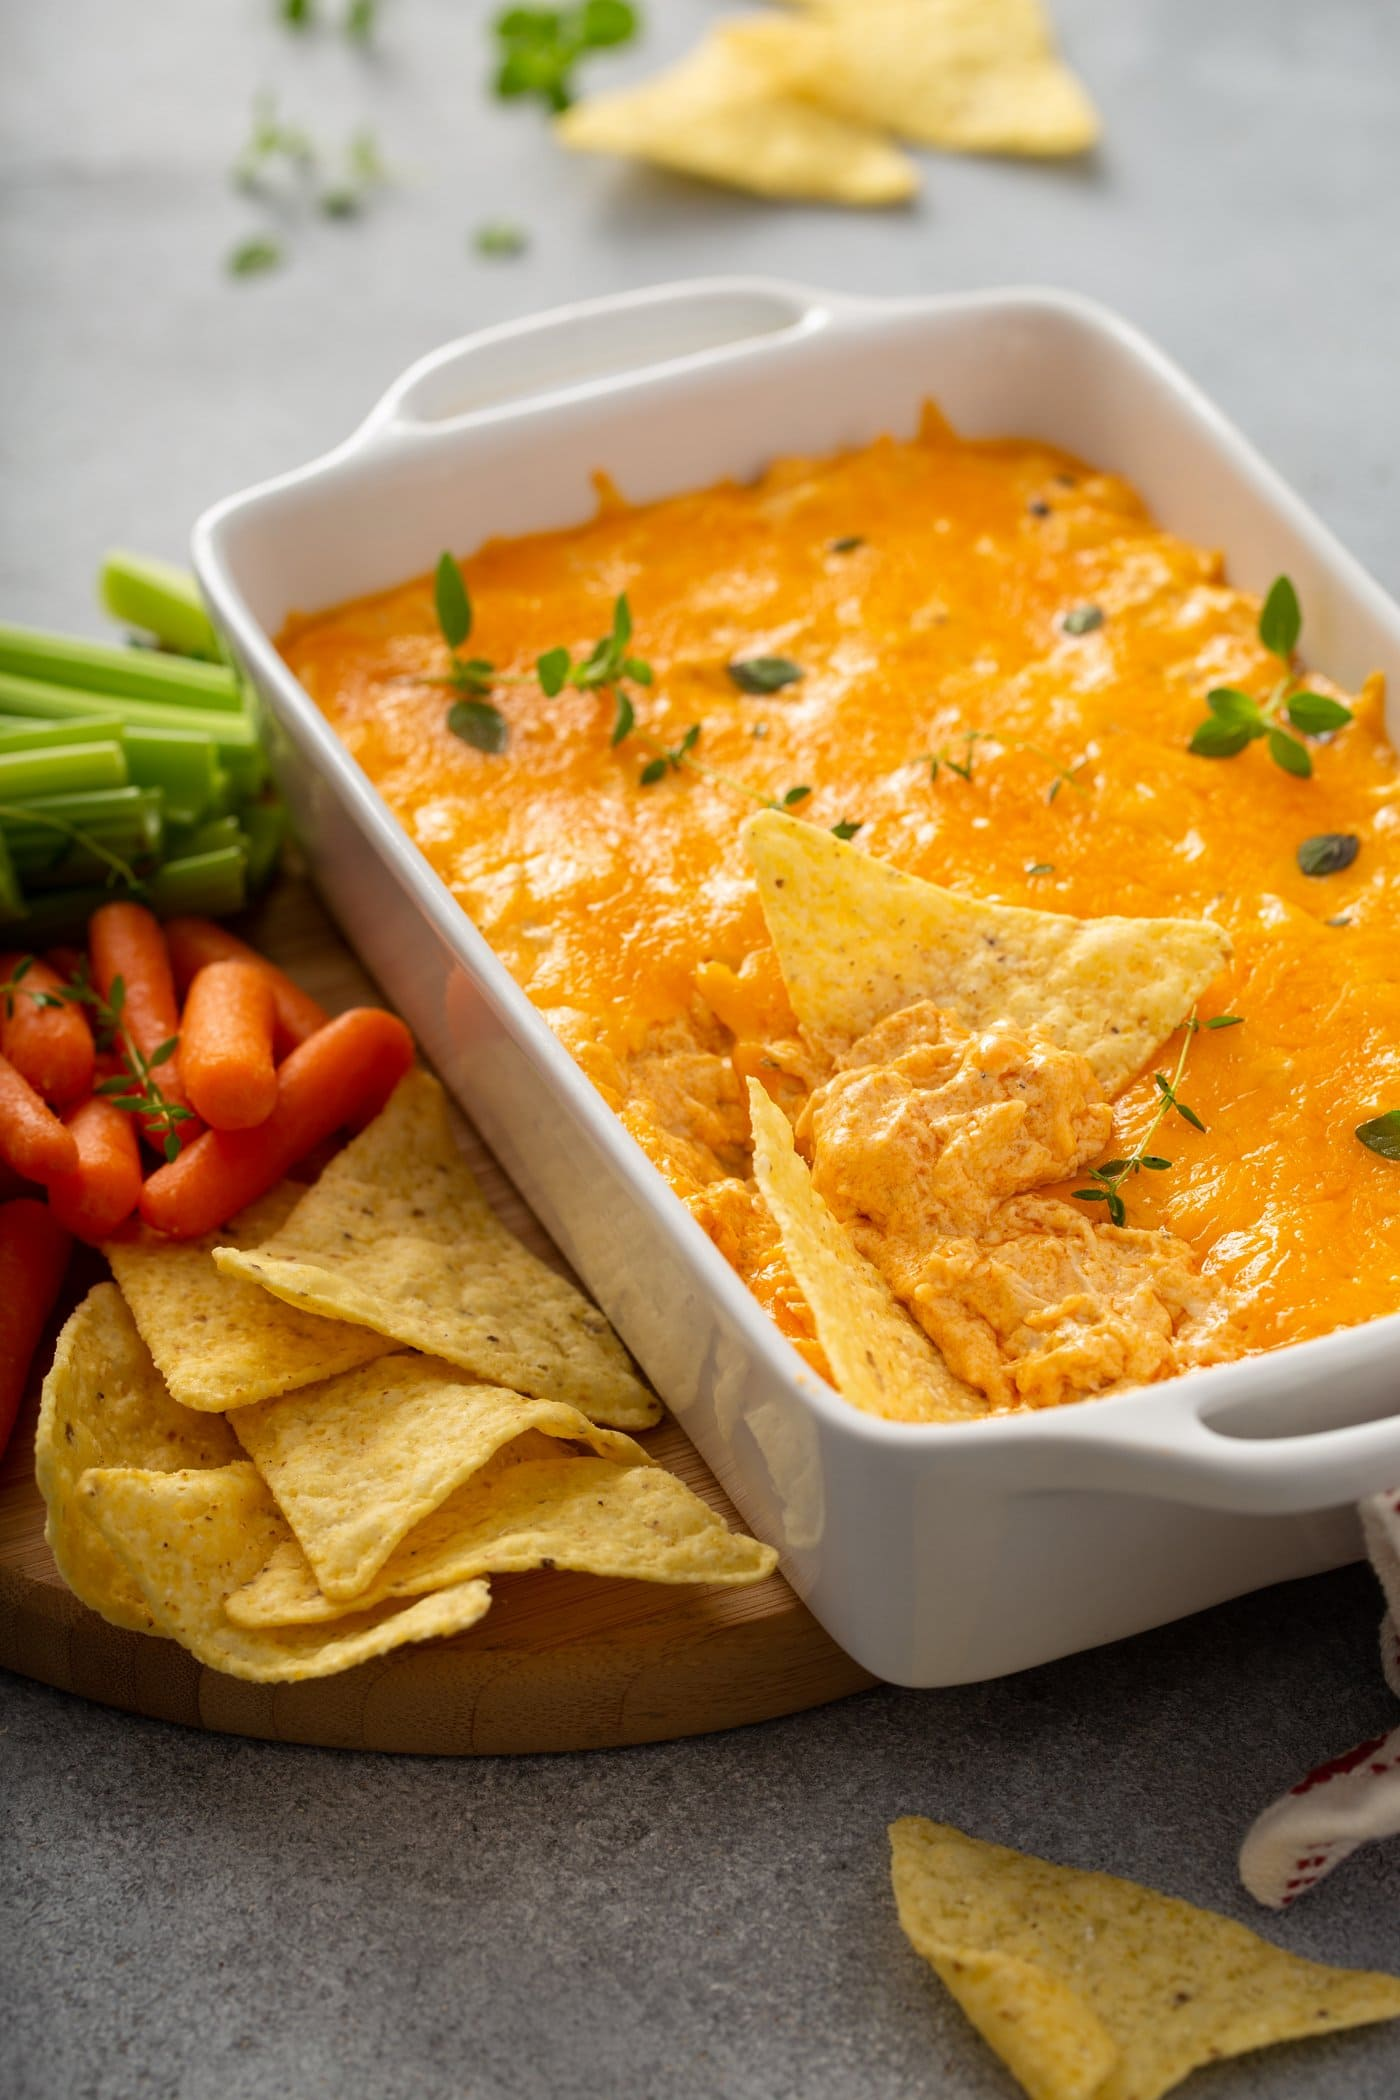 A casserole dish with buffalo chicken dip. A scoop has be taken out of the dip and there are a couple of chips laying in the dip. The dip is covered in melted cheese and sprinkled with parsley leaves. There are chips, carrots and celery laying next to the dip.